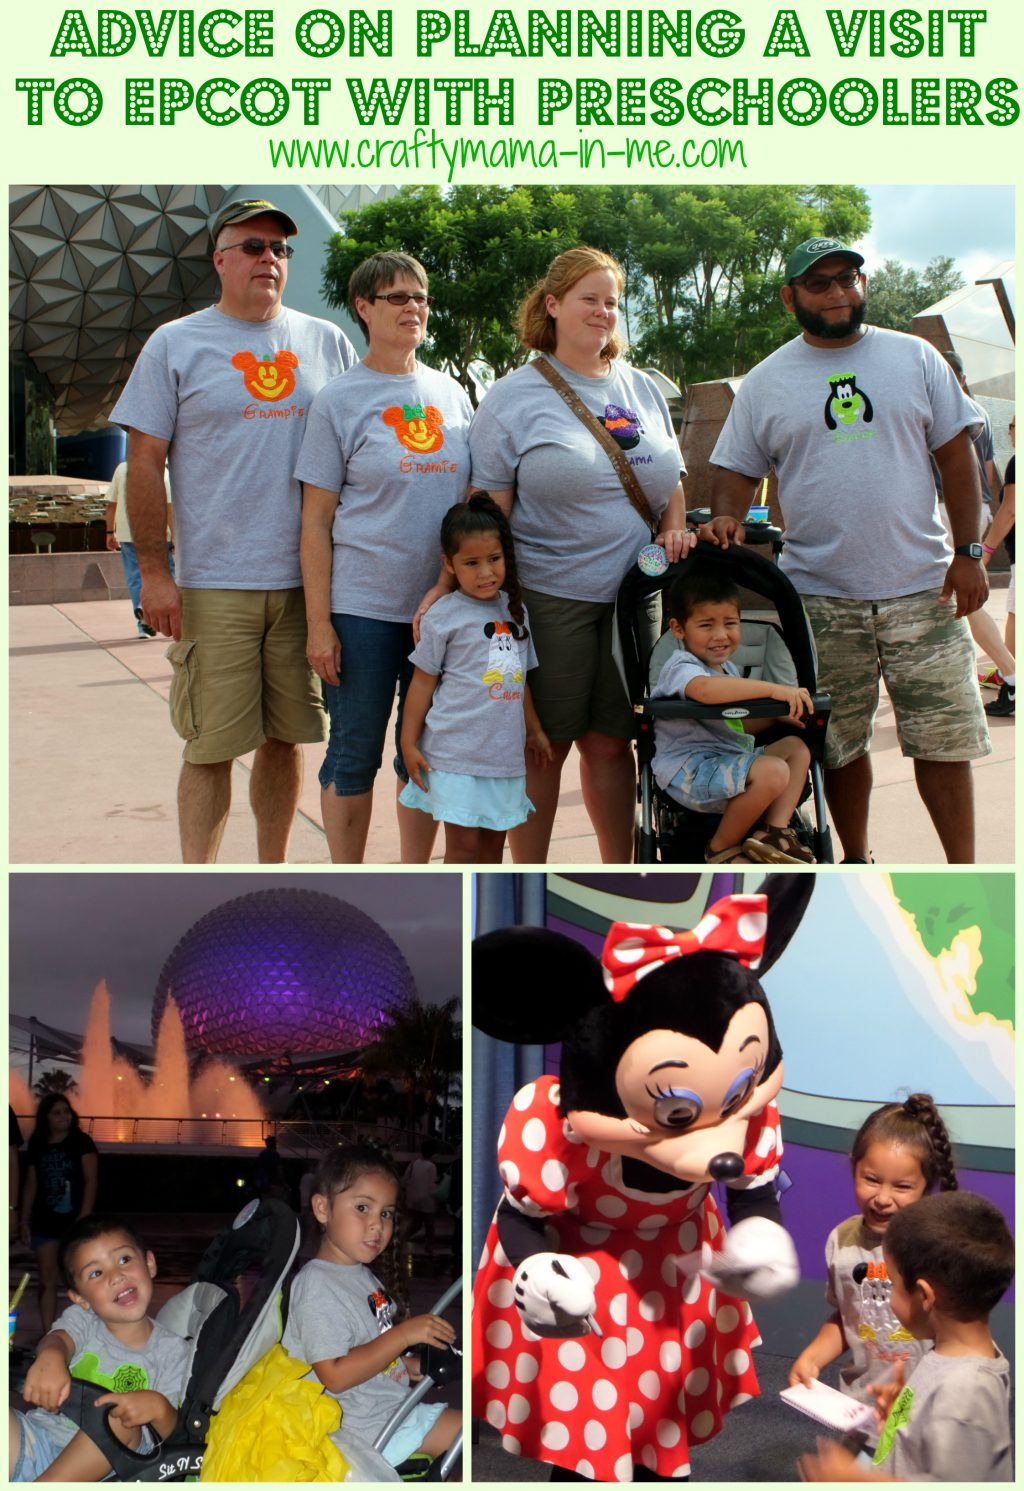 Advice on Planning a Visit to Epcot with Preschoolers